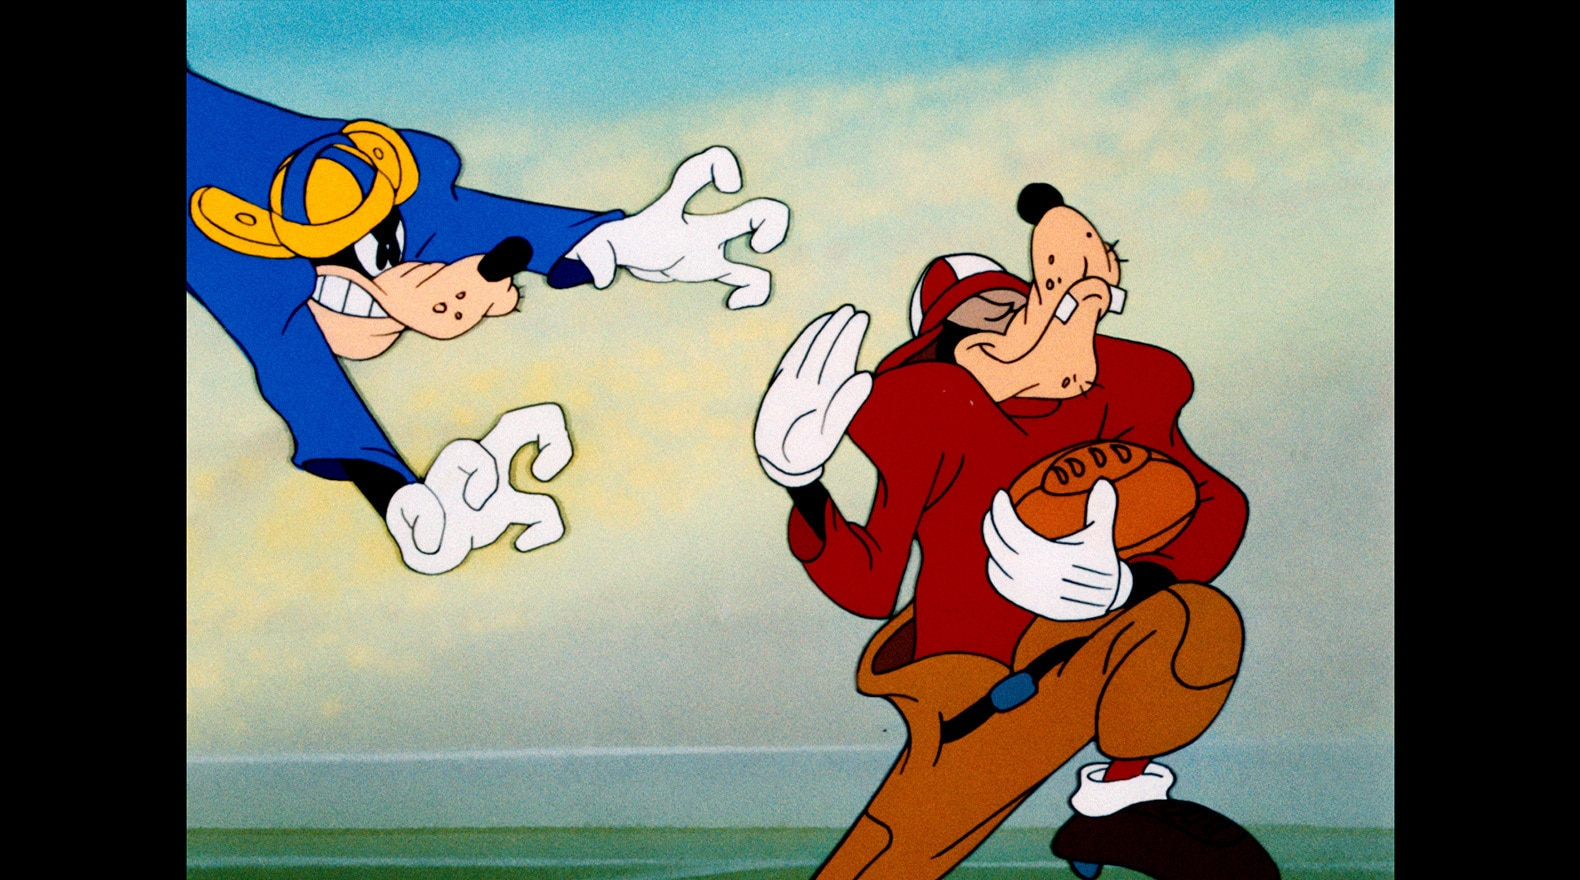 Goofy teaches everyone a thing or two about how to play football.